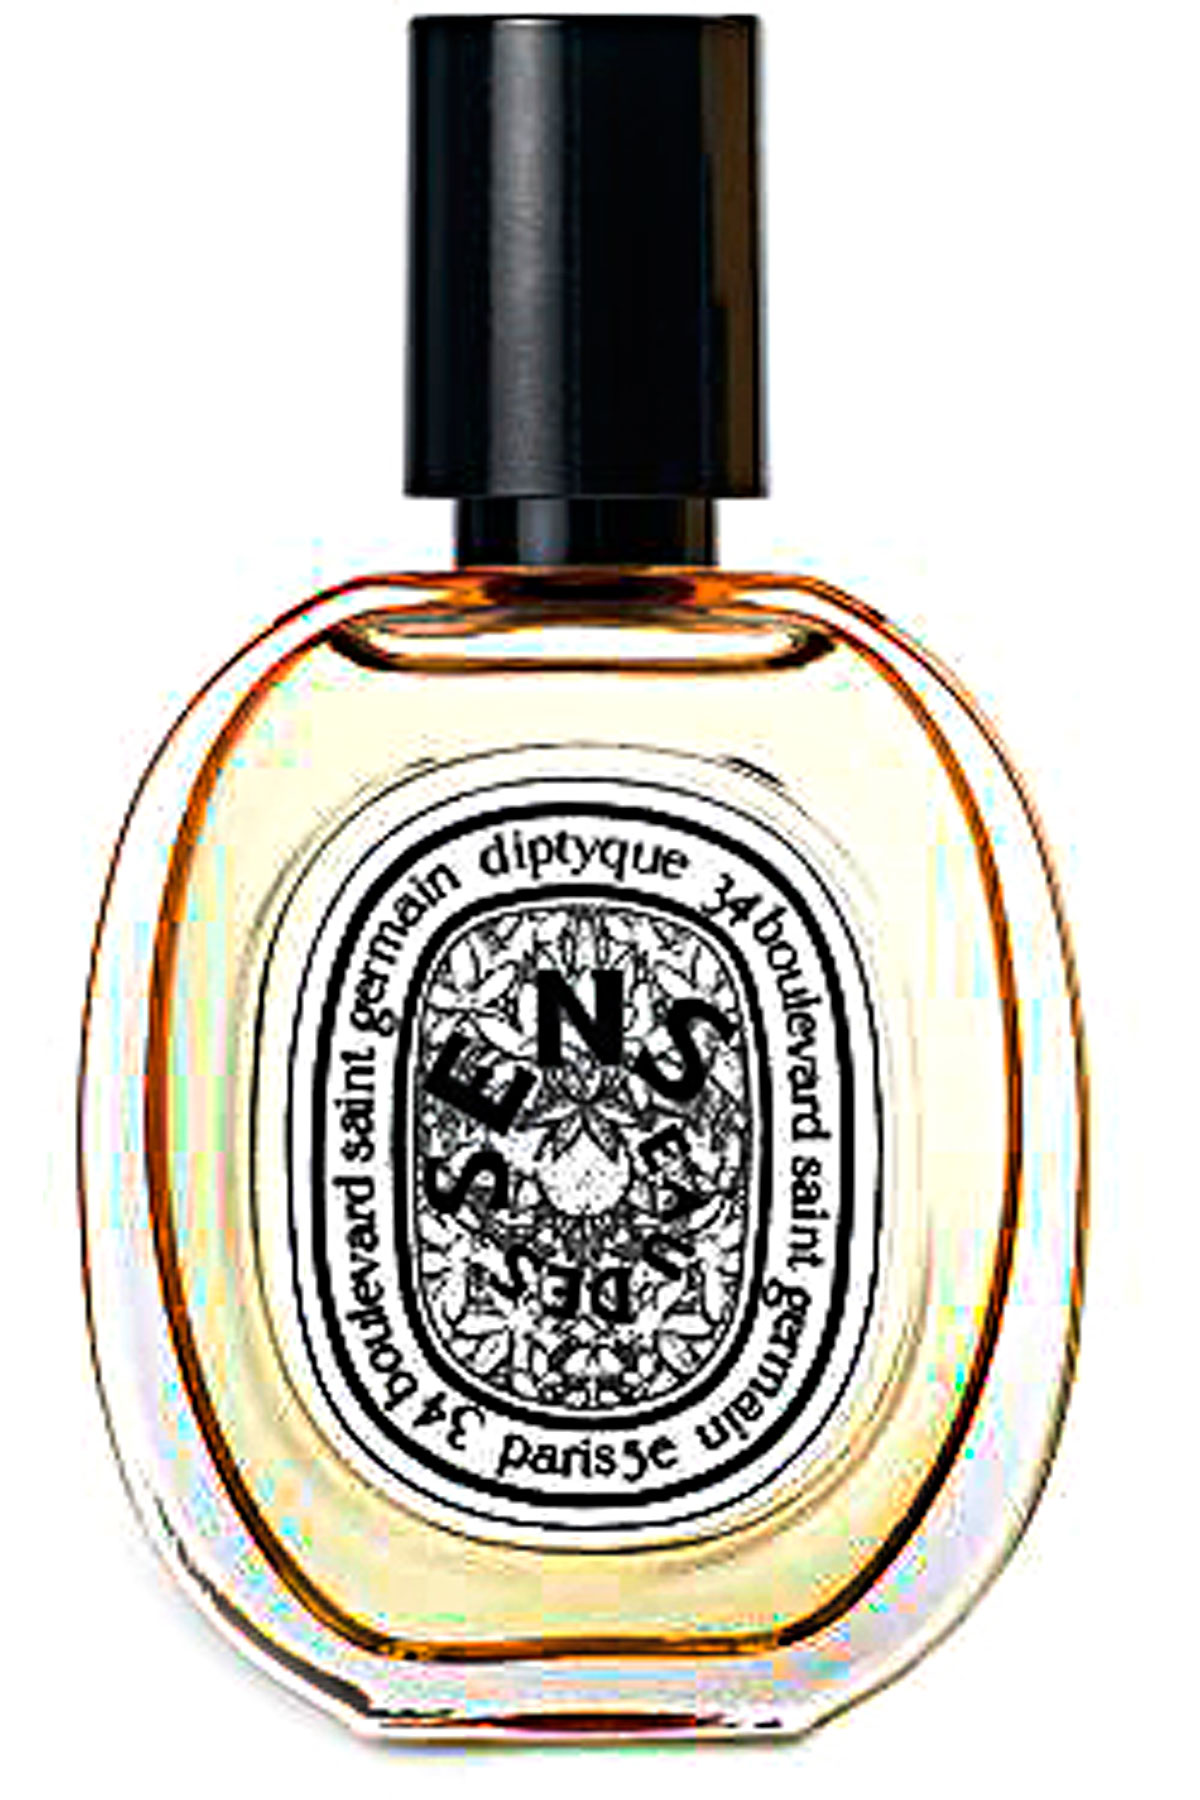 Diptyque Fragrances for Men, Eau De Sens Limited Edition - Eau De Toilette - 30 Ml, 2019, 30 ml